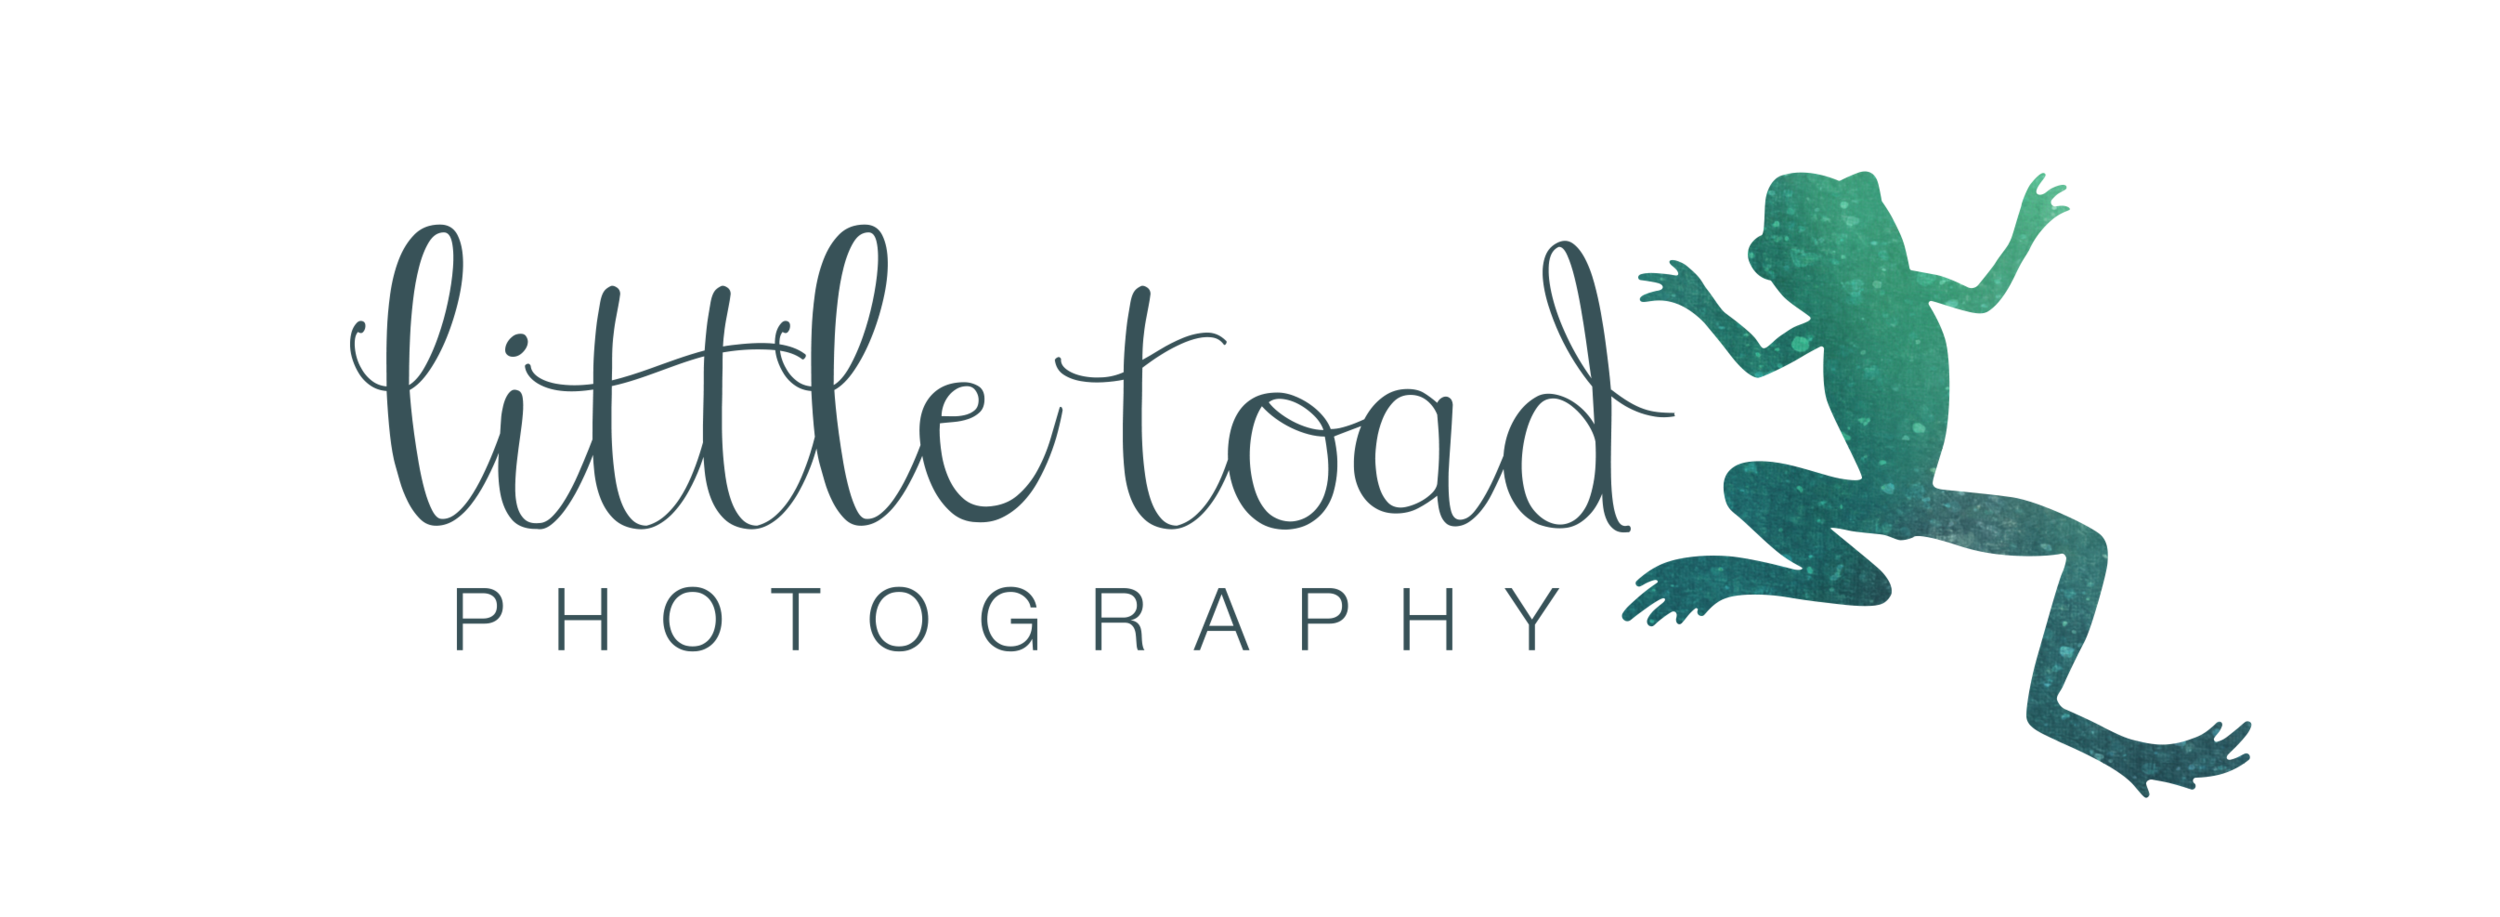 Little Toad photography logo. Natural light portrait photography based in Marple, Cheshire run by Aurelie Kennedy.